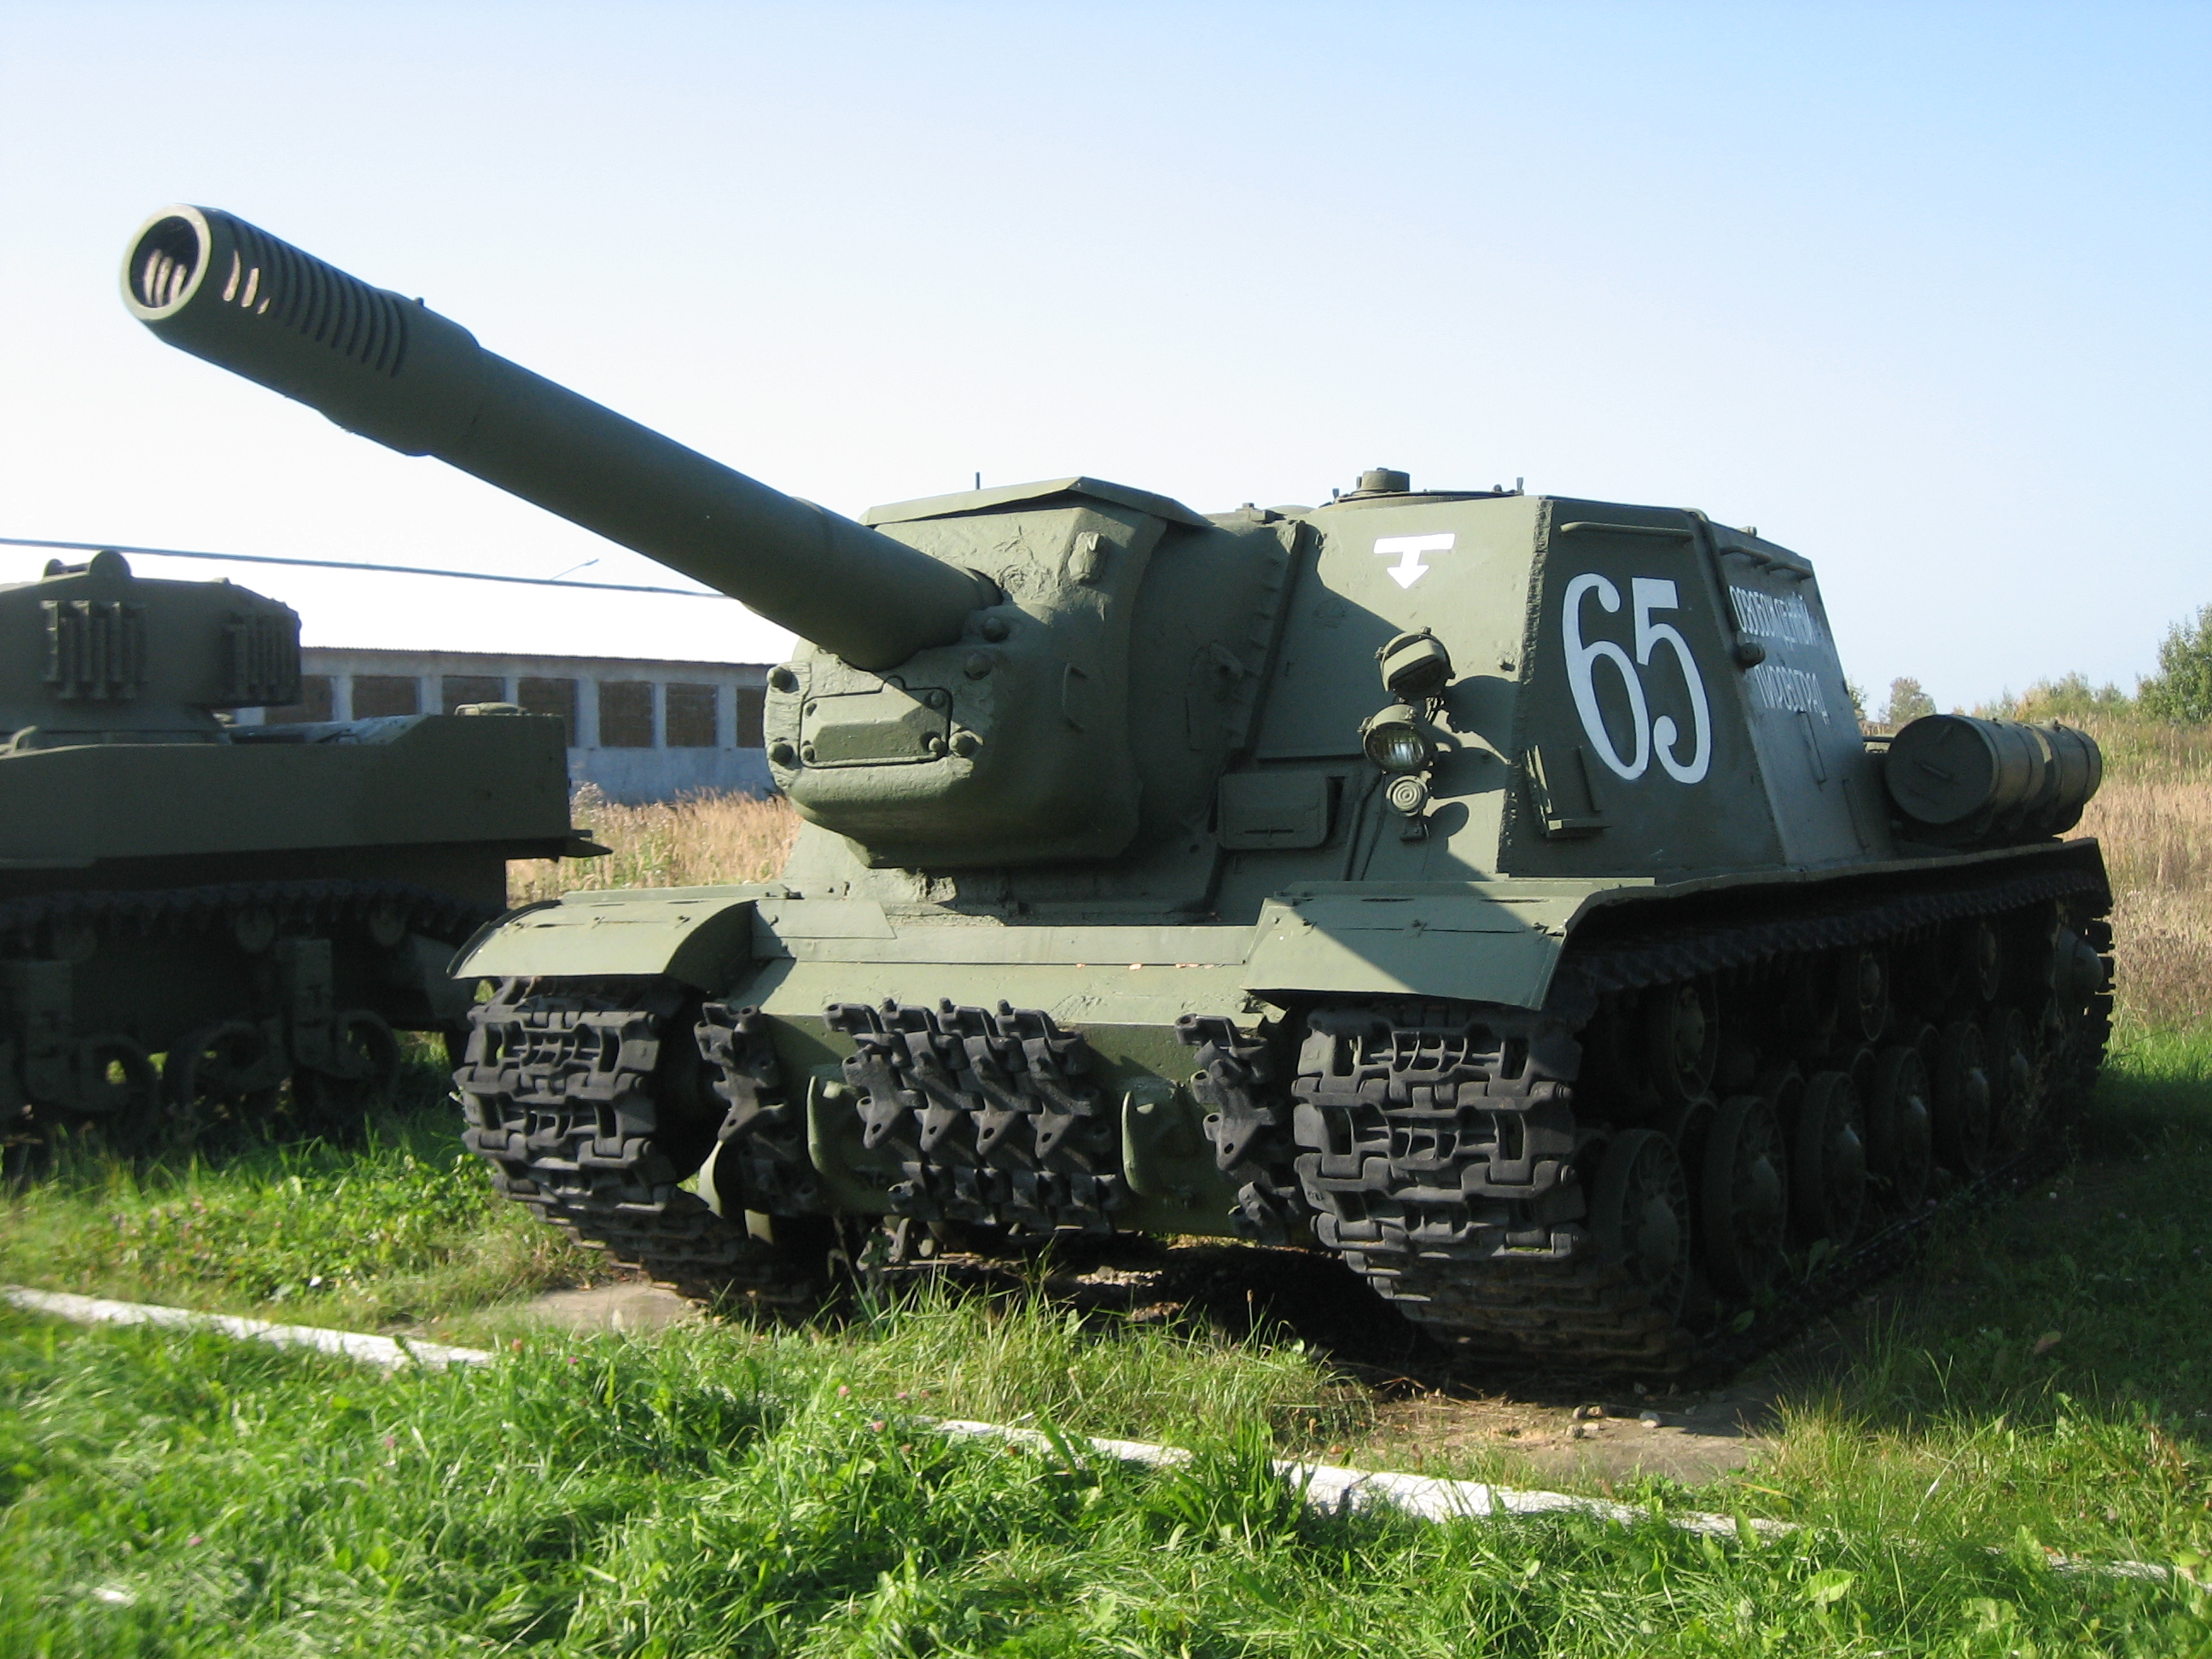 http://upload.wikimedia.org/wikipedia/commons/f/f9/Isu152_Kubinka.jpg